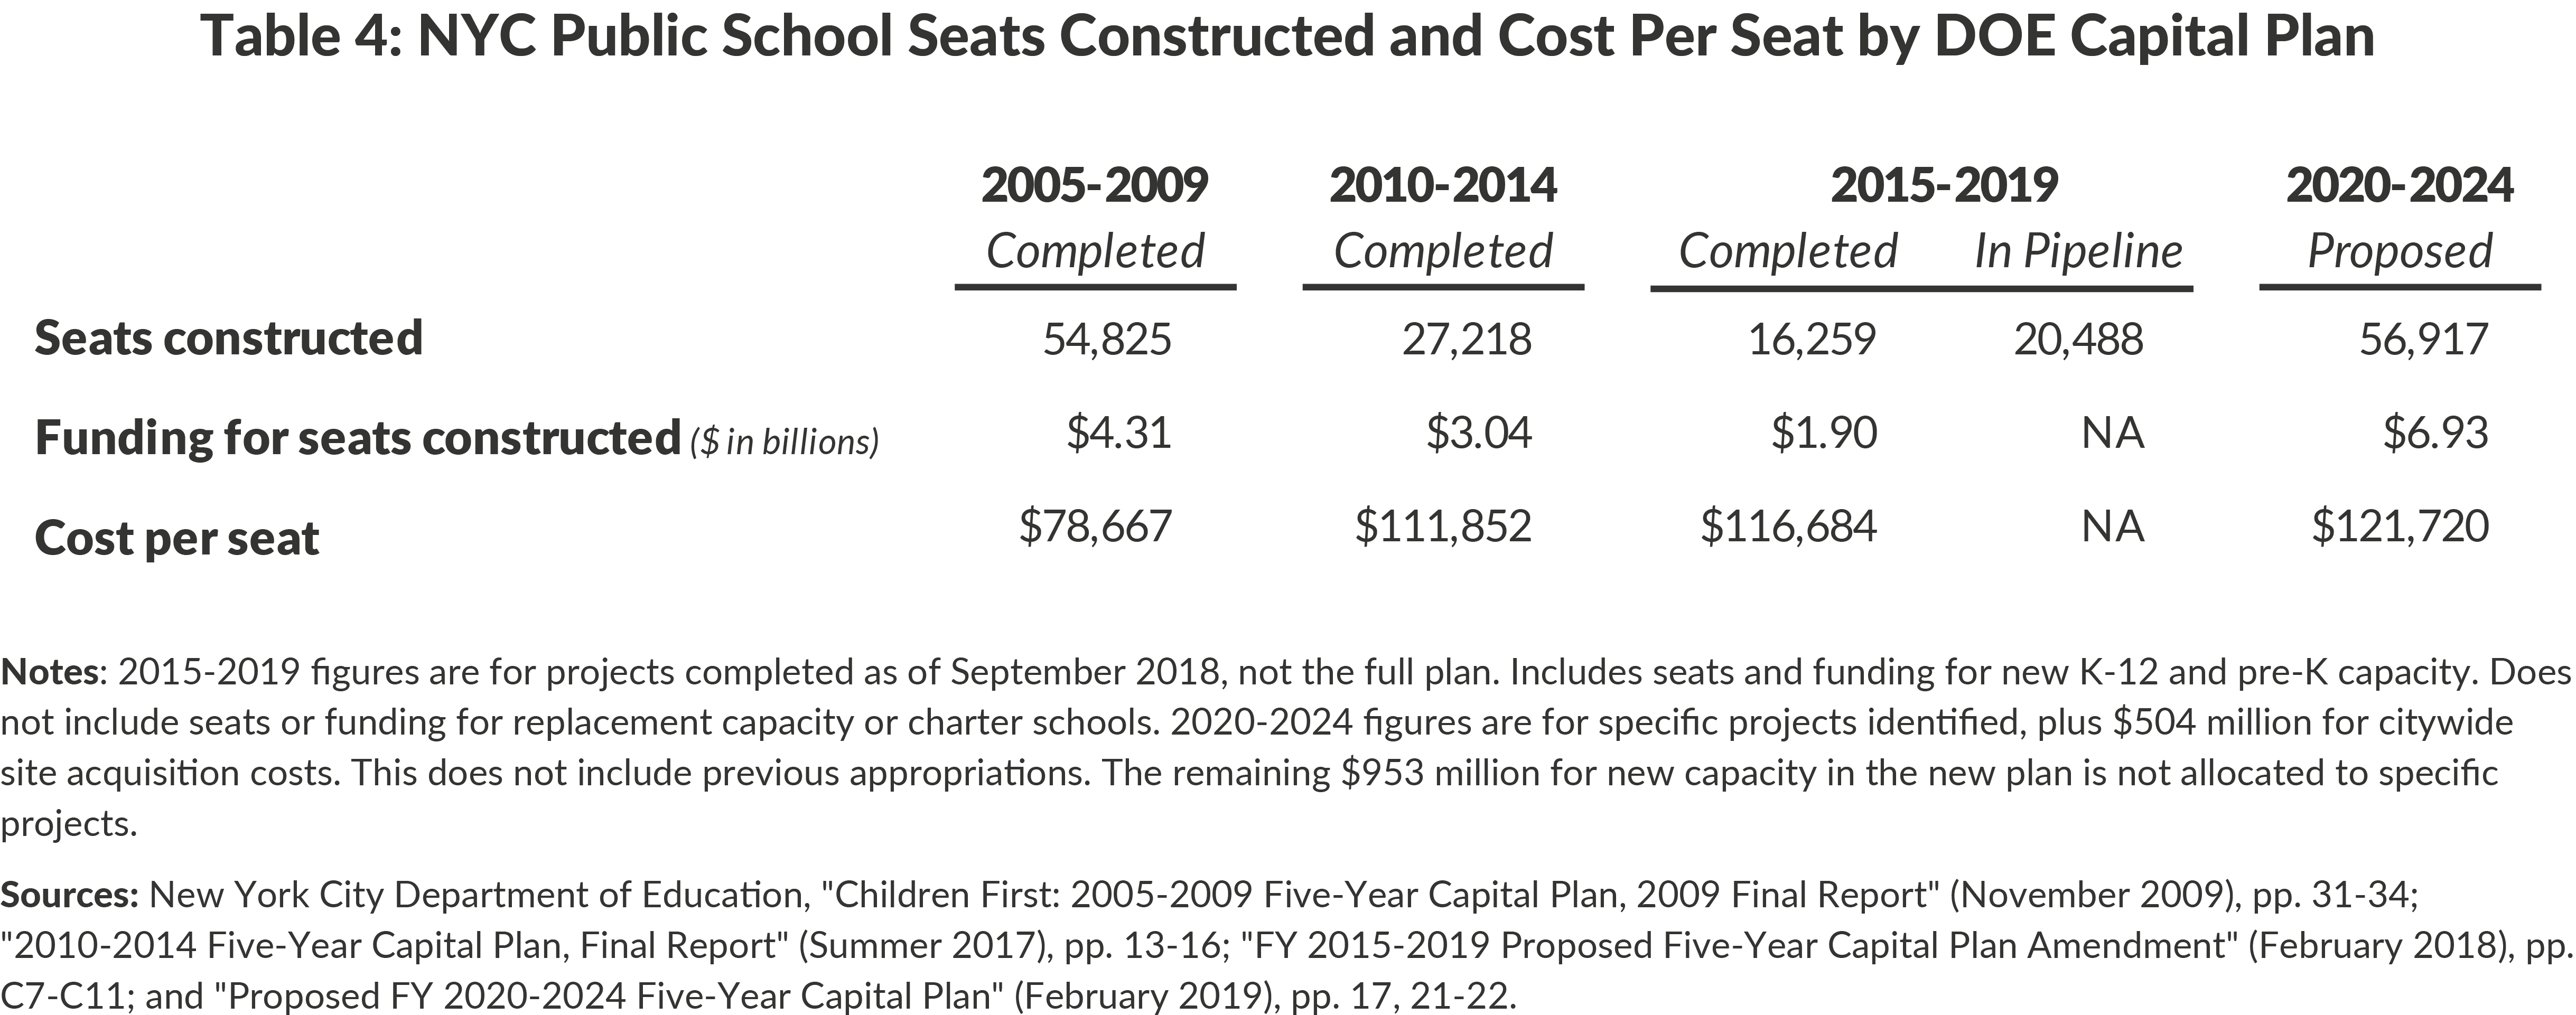 Table 4: NYC Public School Seats Constructed and Cost Per Seat by DOE Capital Plan